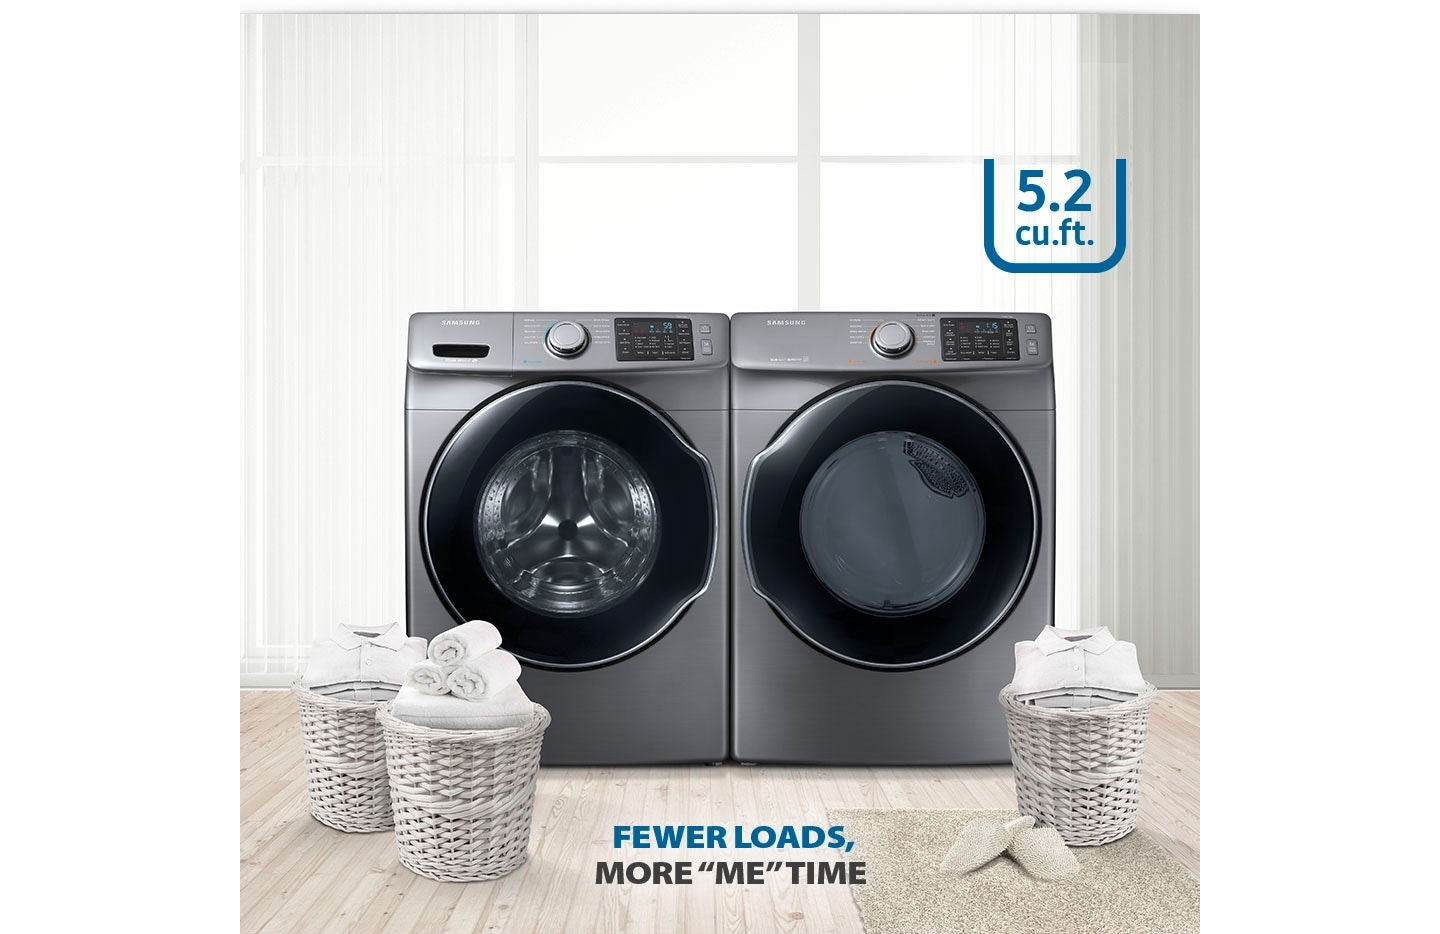 home pedestals samsung ge furniture dryers laundry amana washer appliances dryer hotpoint washers in latest top pairs and technology pedestal maytag